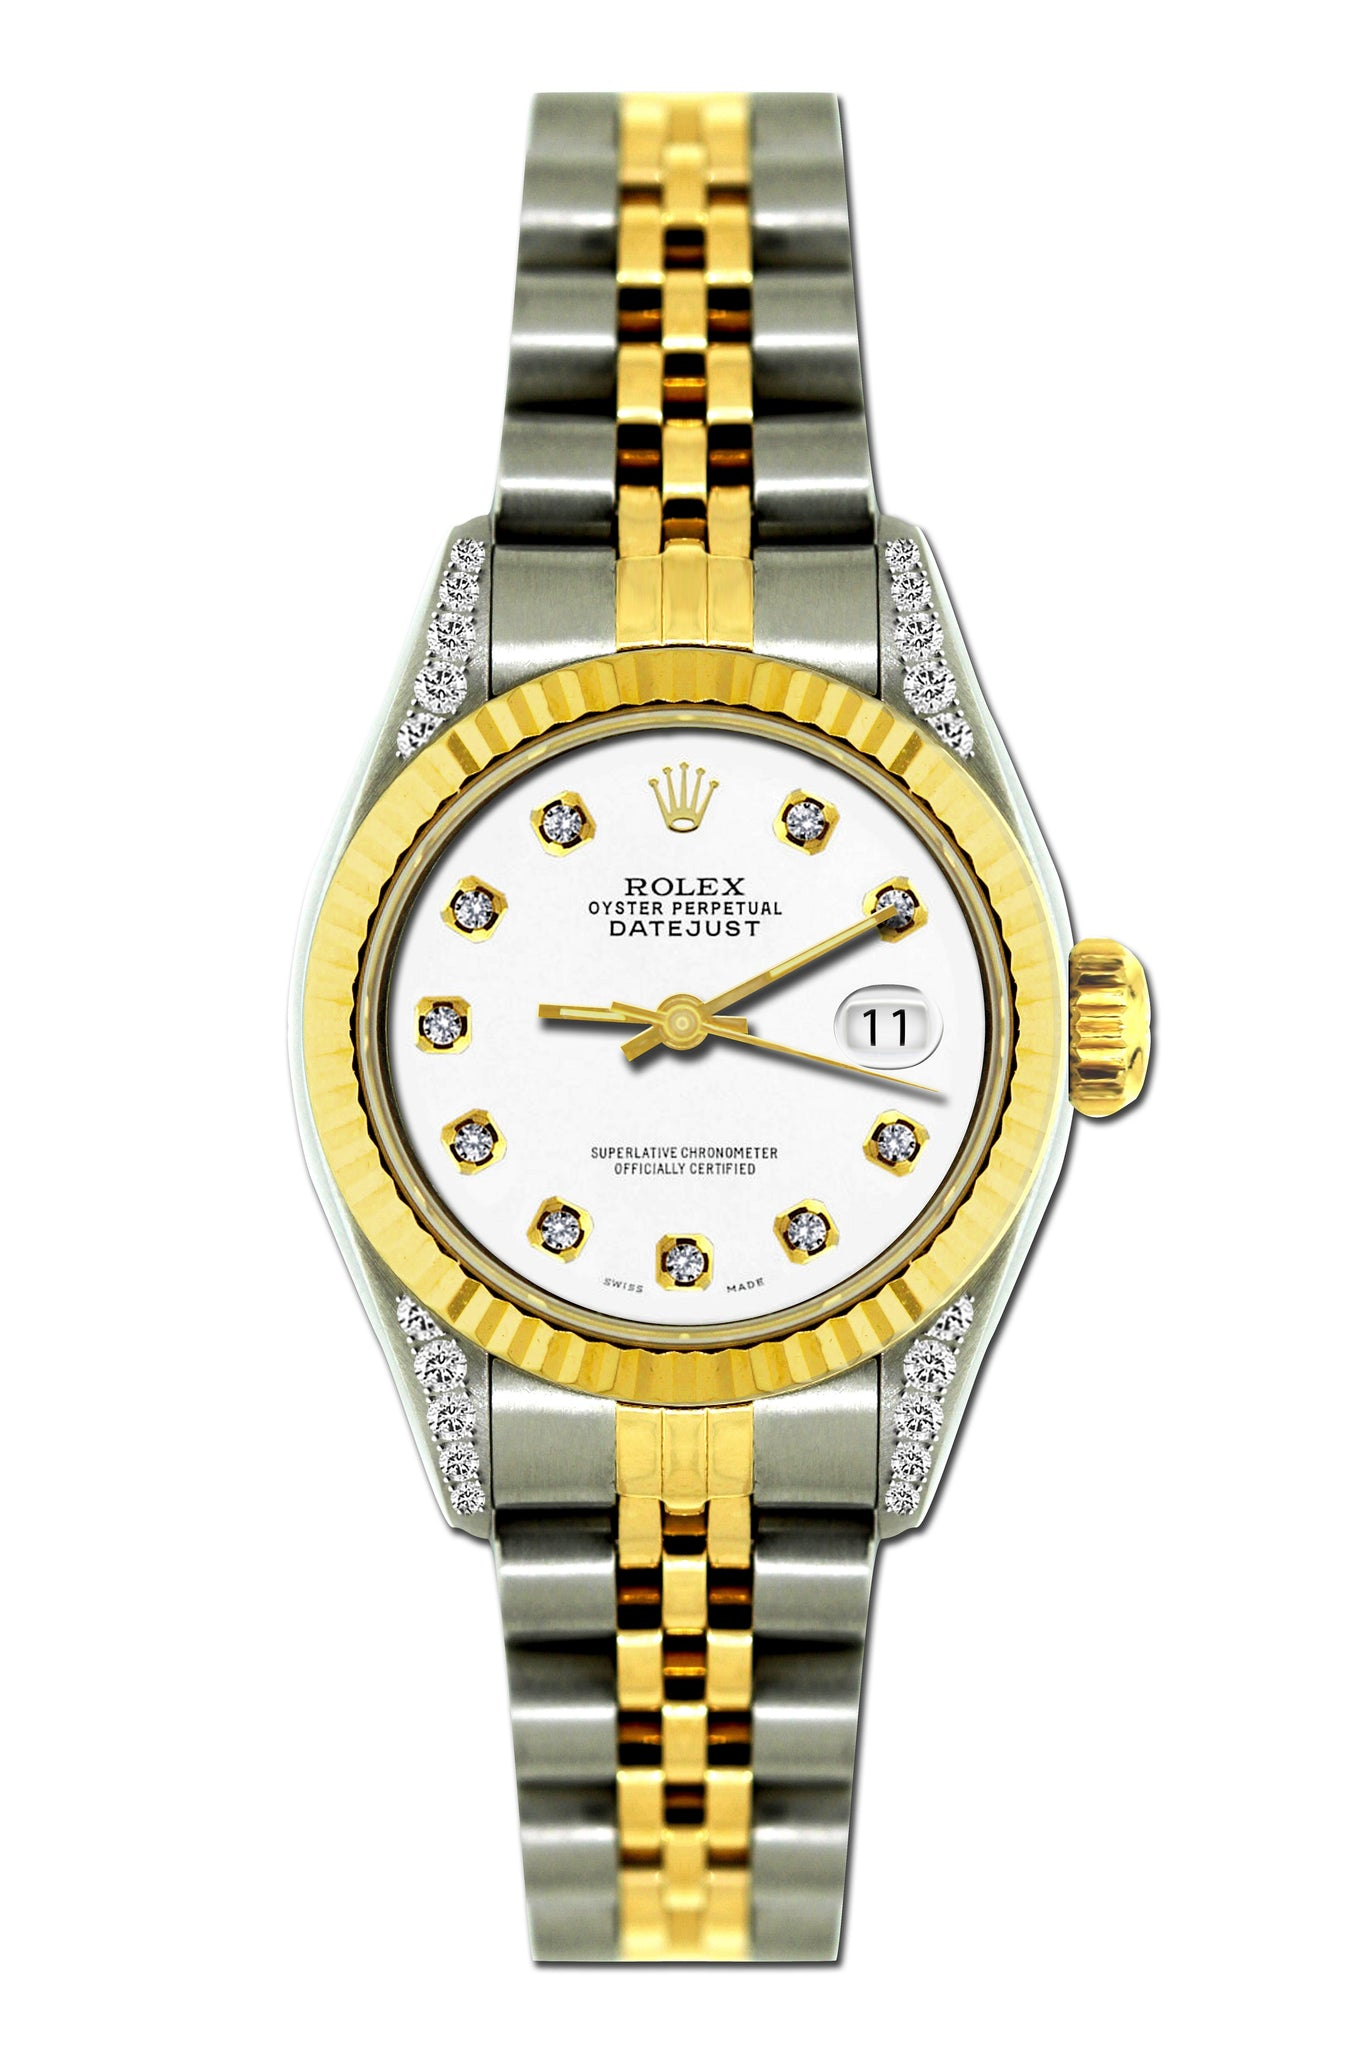 Rolex Datejust 26mm Yellow Gold and Stainless Steel Bracelet Lilac Dial w/ Diamond Lugs